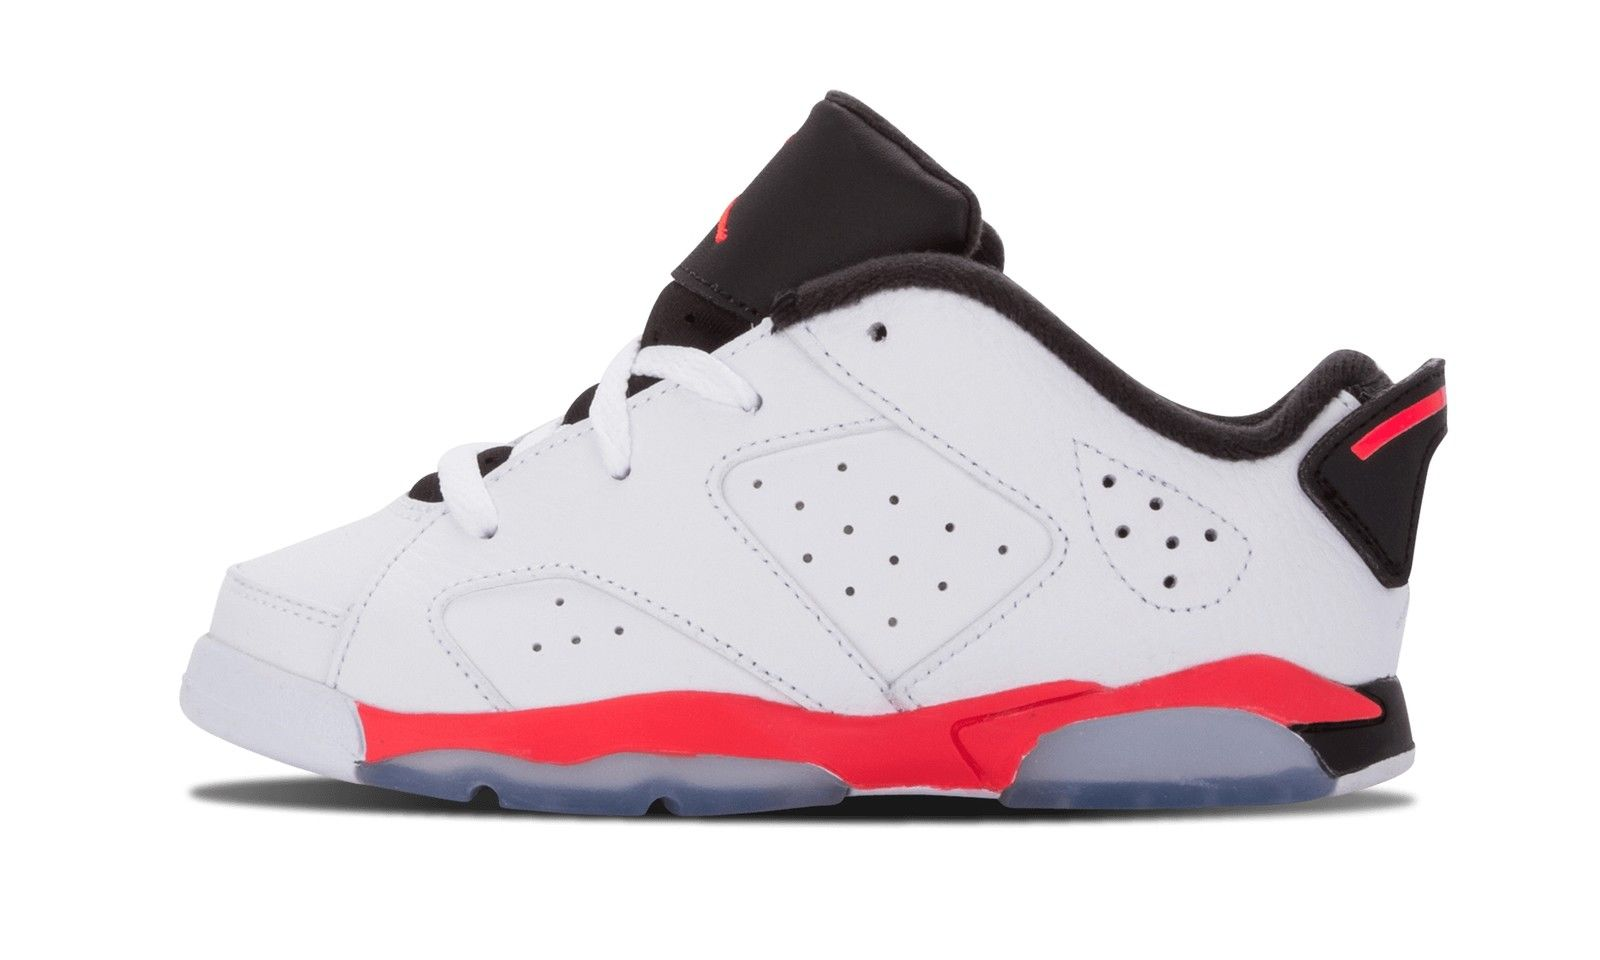 NIKE AIR JORDAN 6 RETRO LOW 白 紅 黑 幼童鞋 US 6 768883-123 J